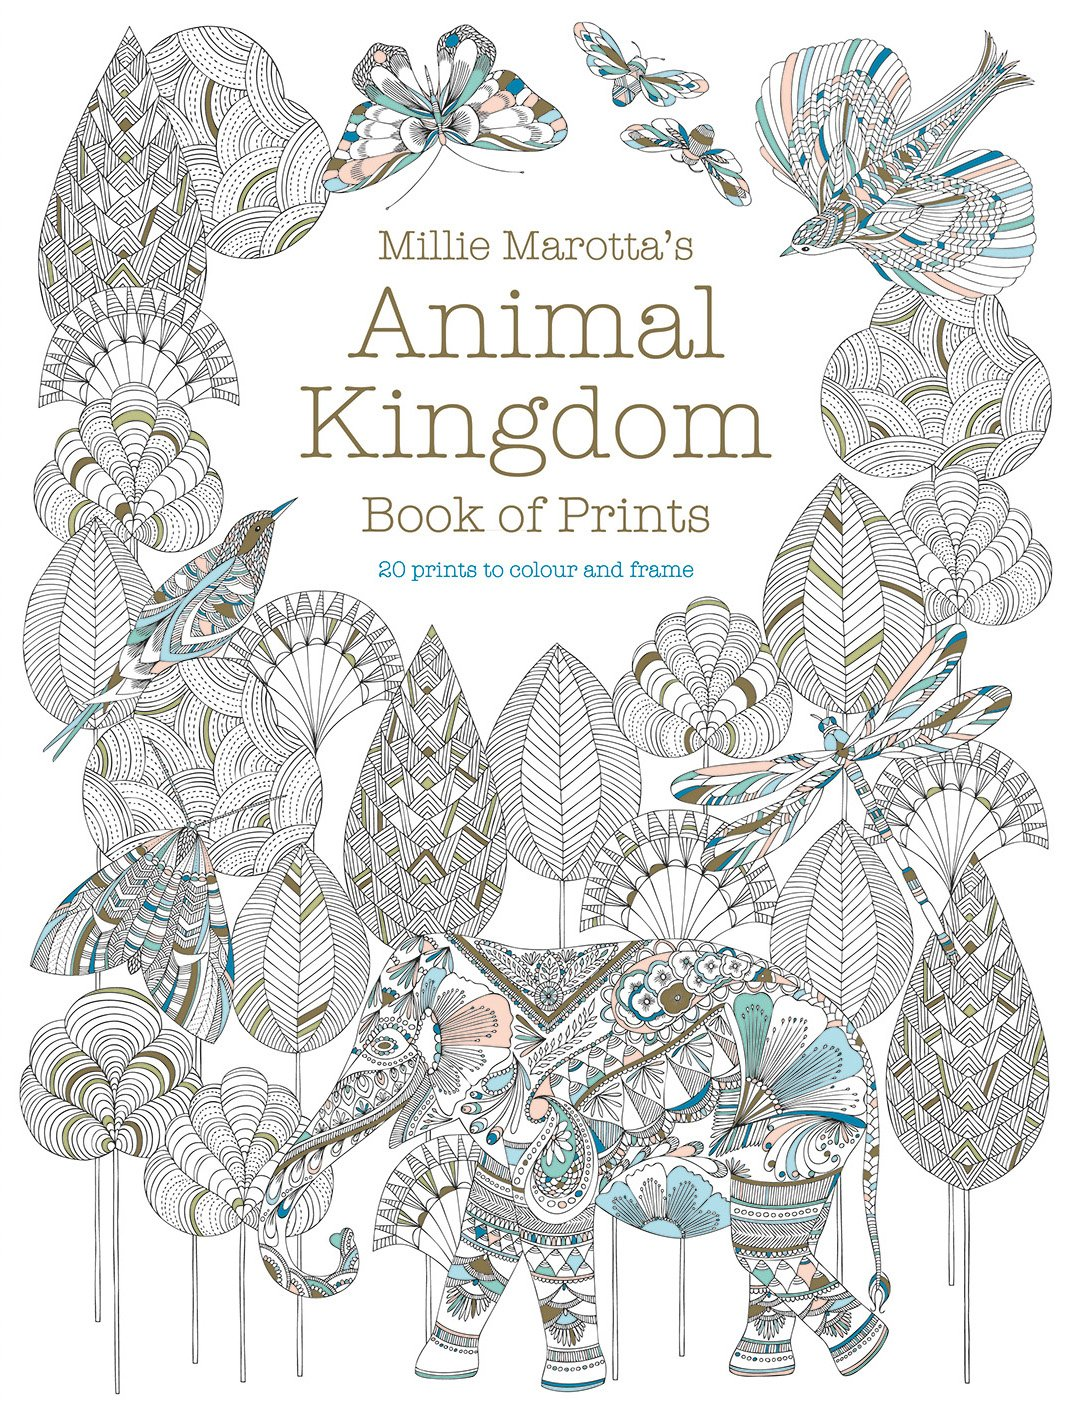 Coloring book animal kingdom - Animal Kingdom Book Of Prints Colouring Books Amazon Co Uk Millie Marotta 9781849944014 Books